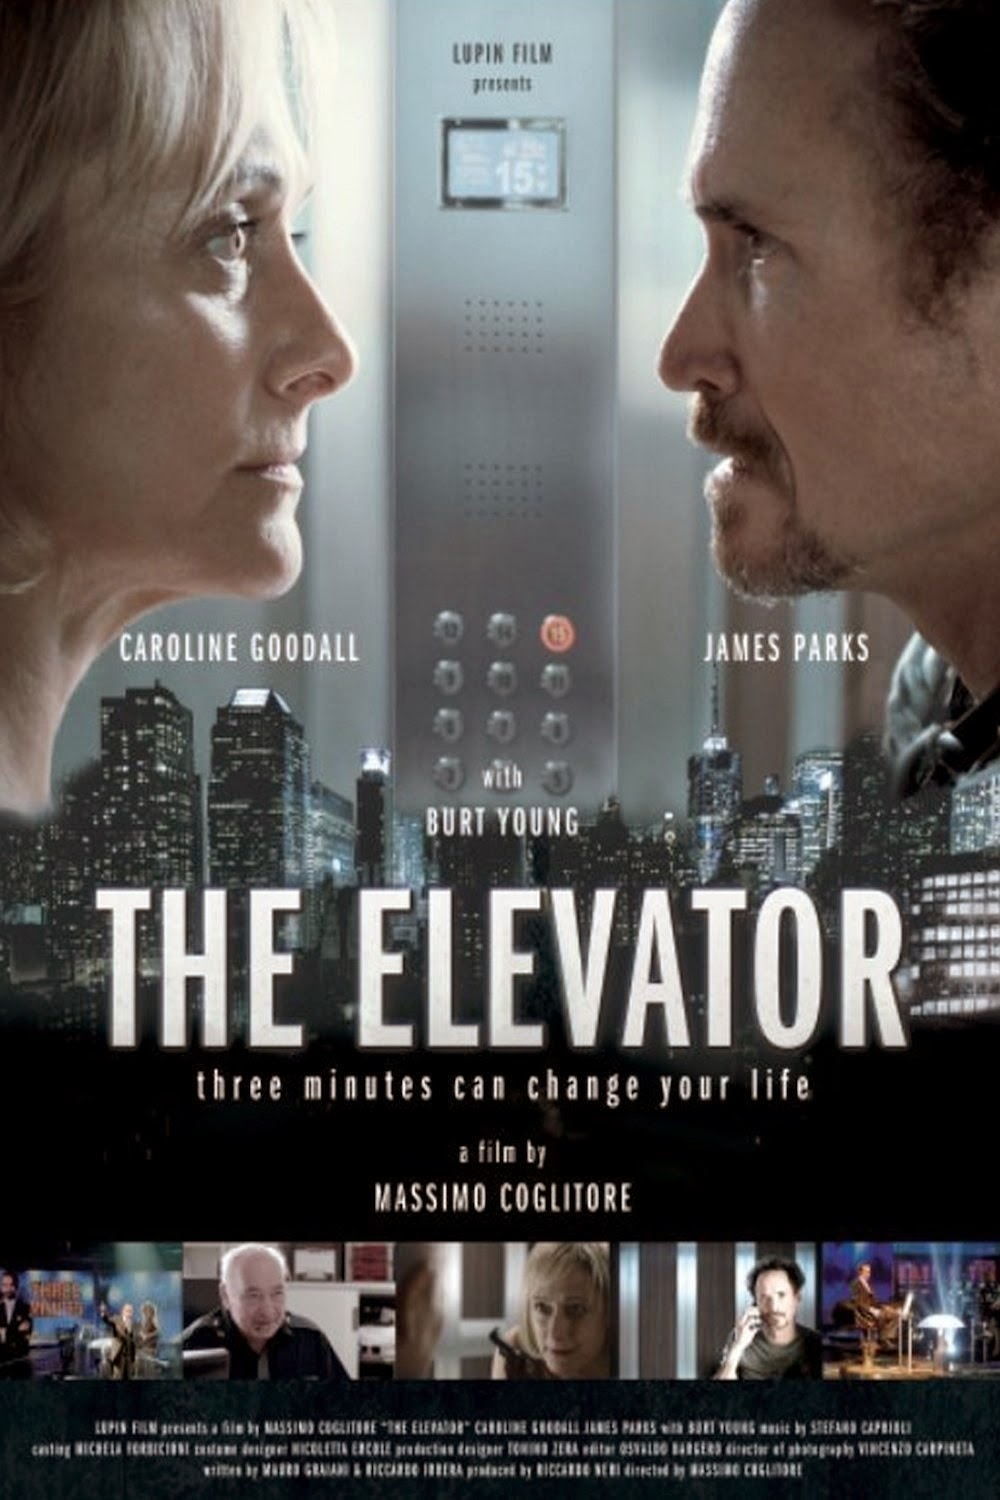 The Elevator: Three Minutes Can Change Your Life (2013)